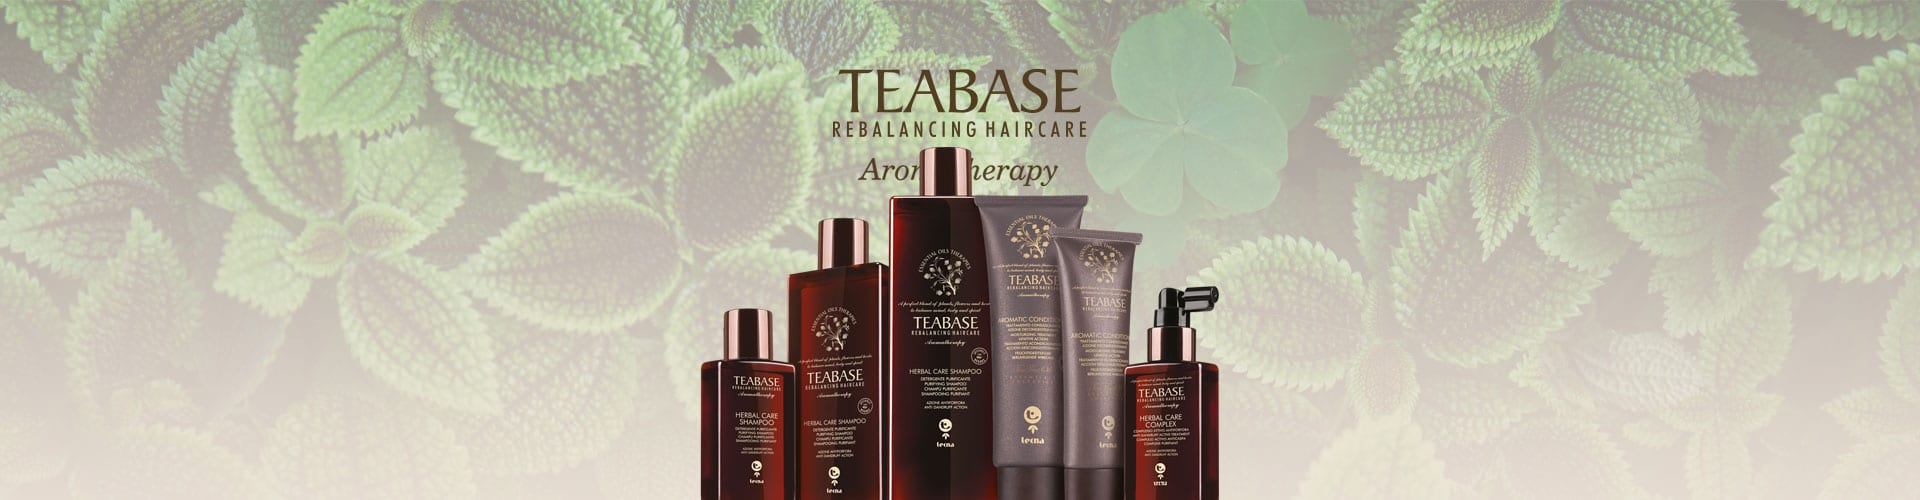 kit Herbal Care Teabase di Tecna per eliminare la forfora